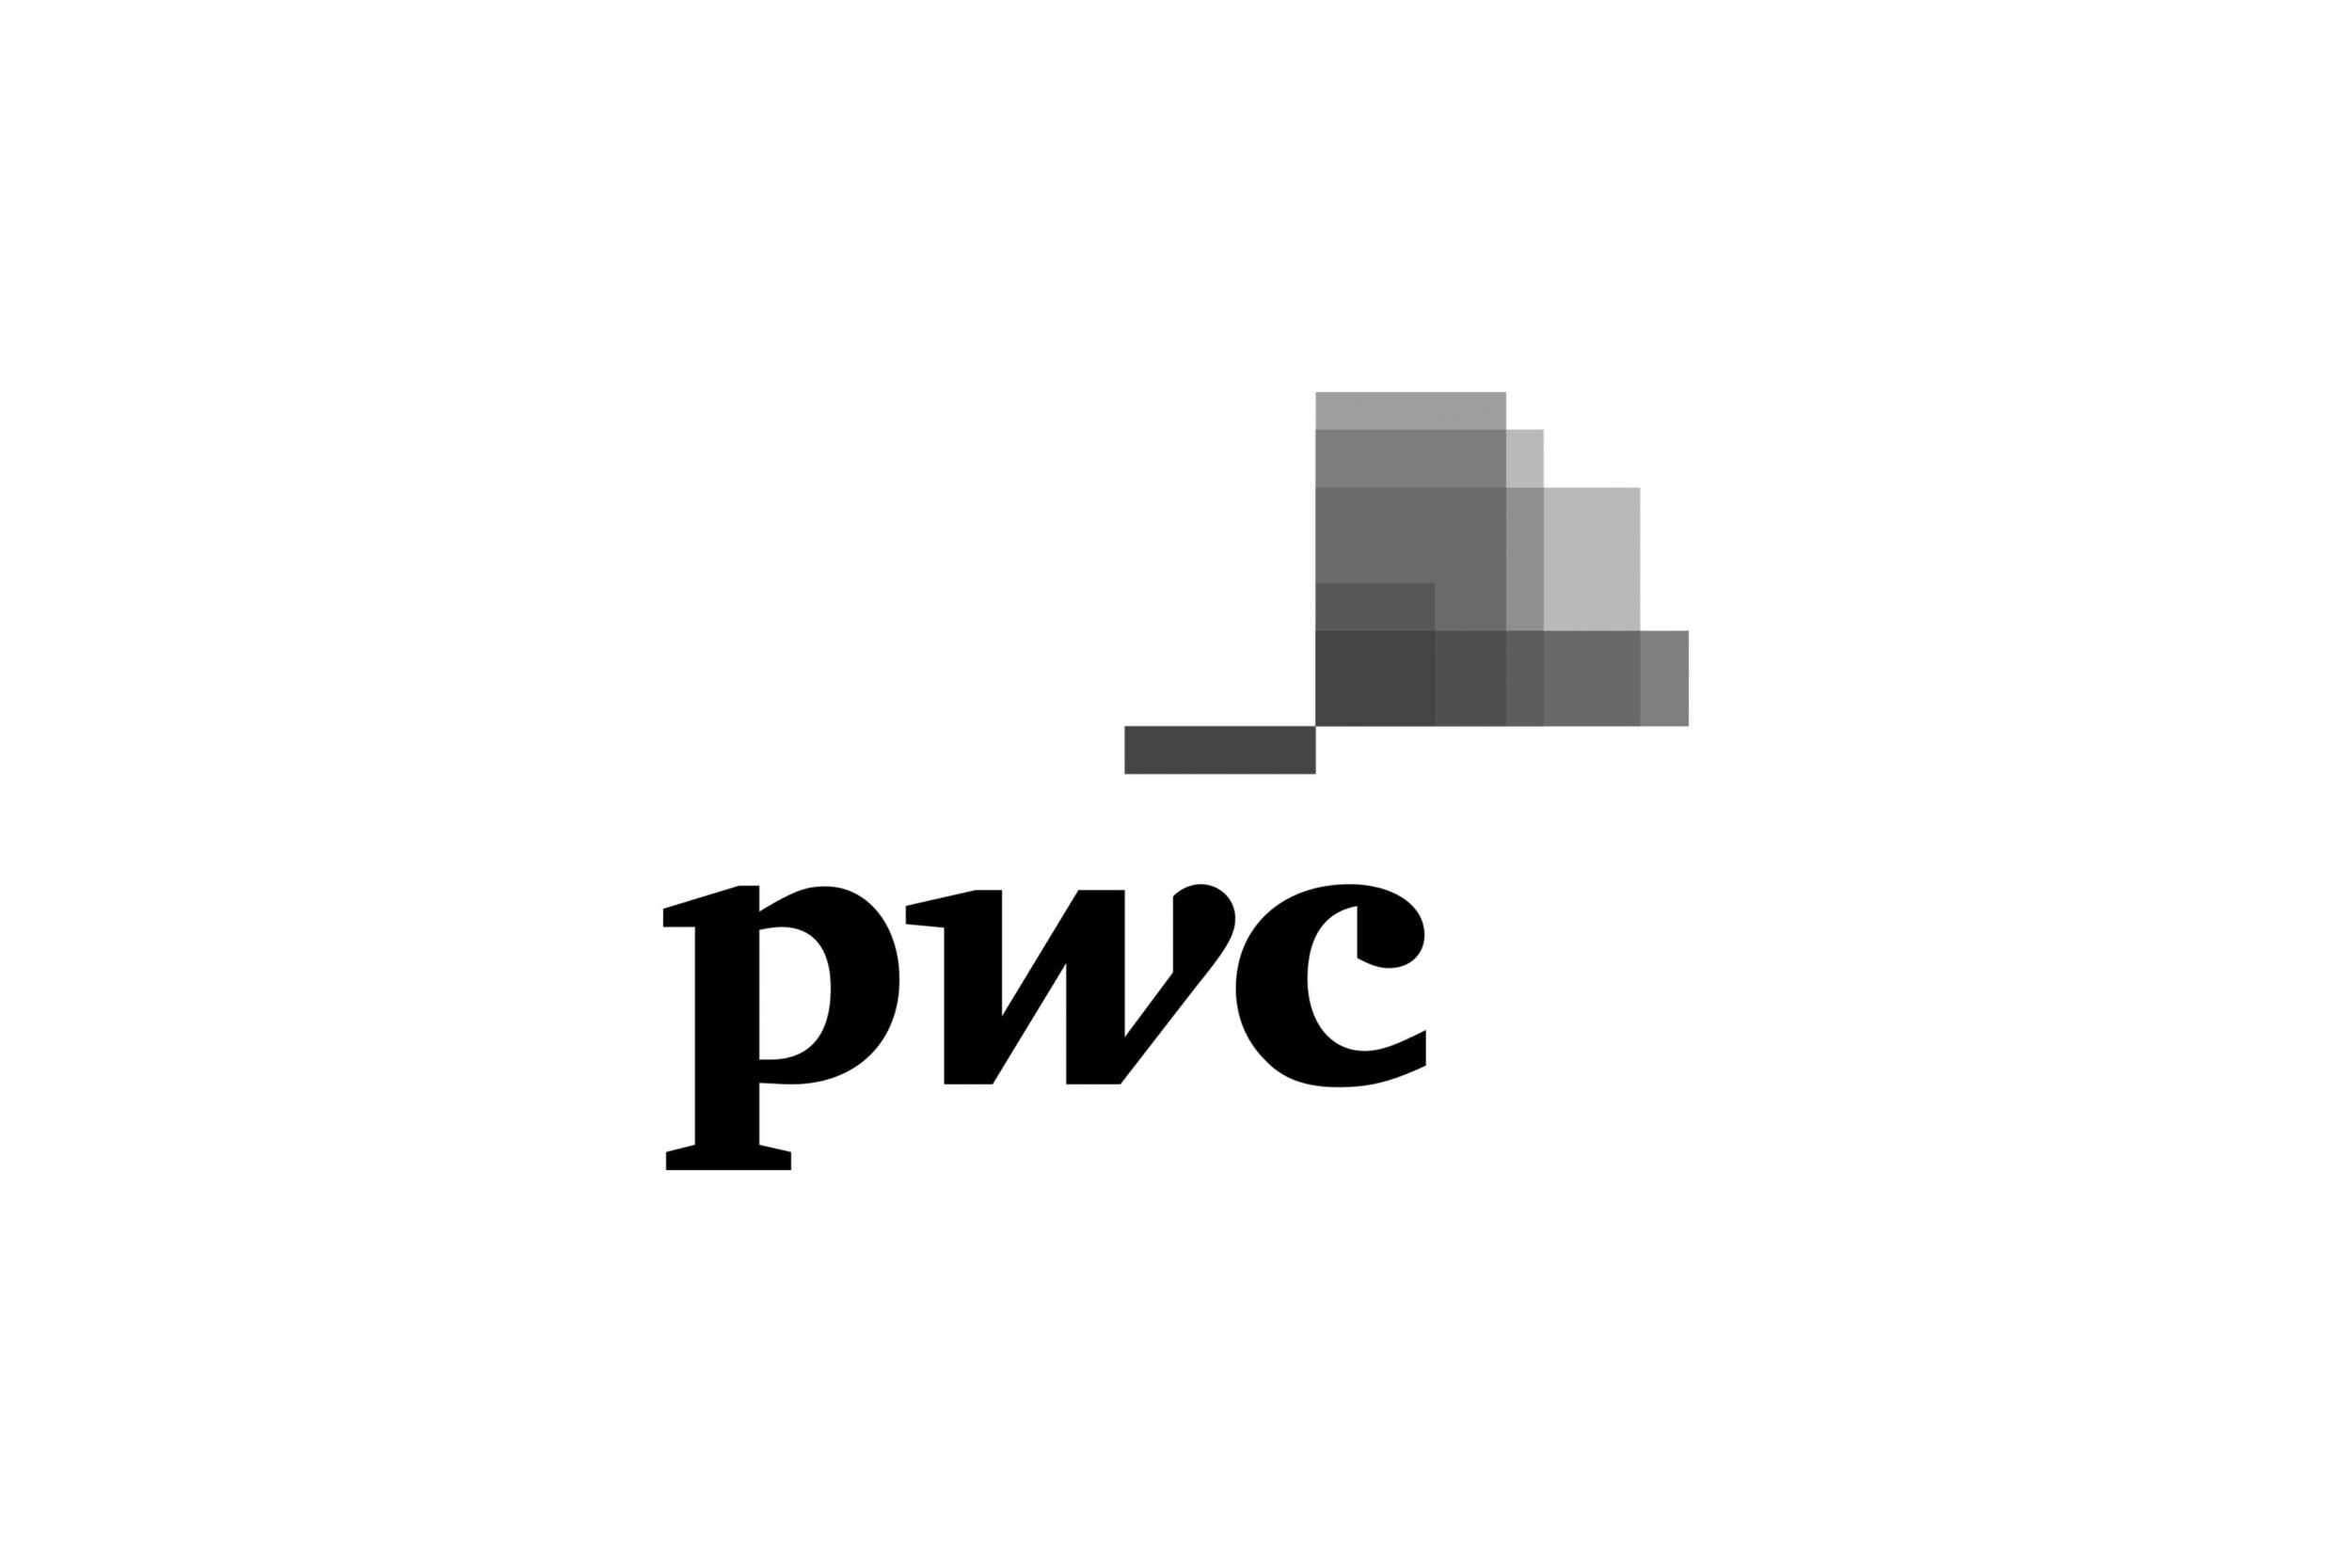 Untitled1_0000s_0055_JEB-ClientLogos_0003s_0004_Pwc-logo.png.jpg.jpg